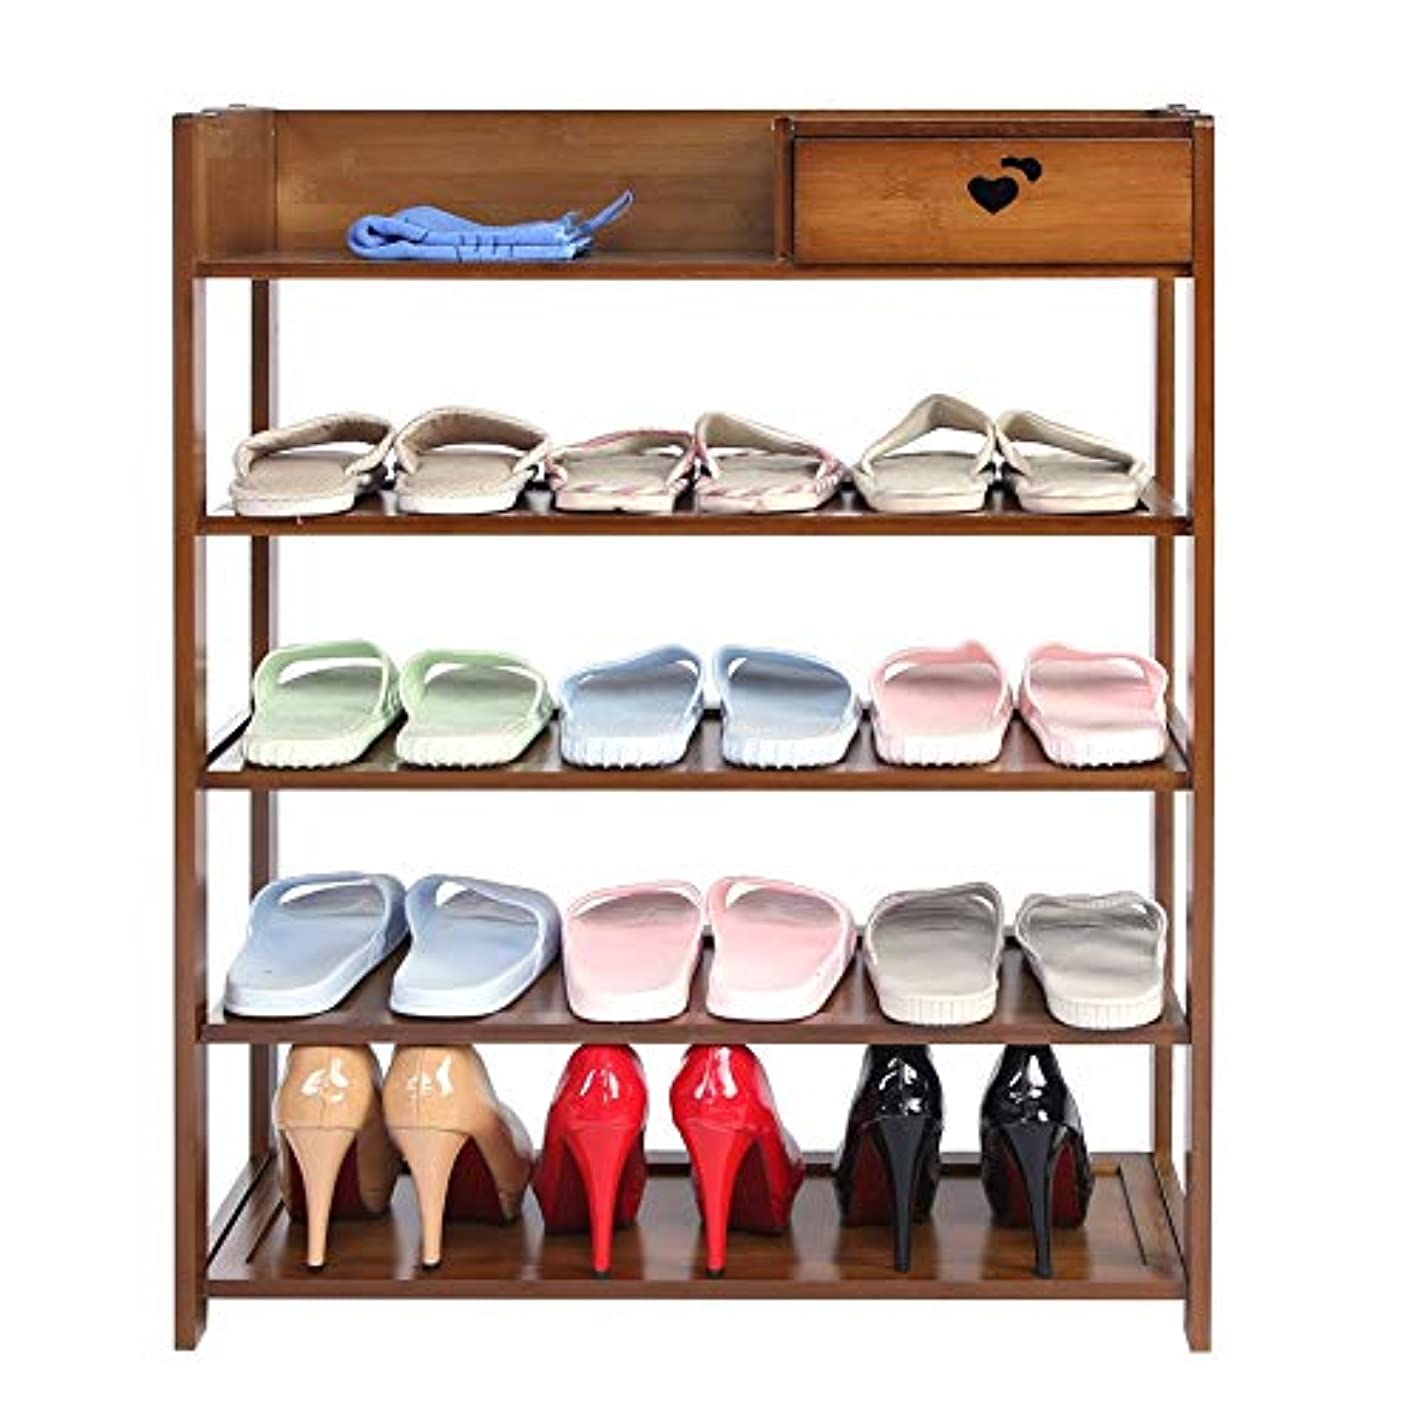 Asixx Shoe Rack, Natural Bamboo Shoe Shelf Multi-Layer Shoe Organizer with Drawer for Storing Shoes and Other Stuff(5 Tiers)